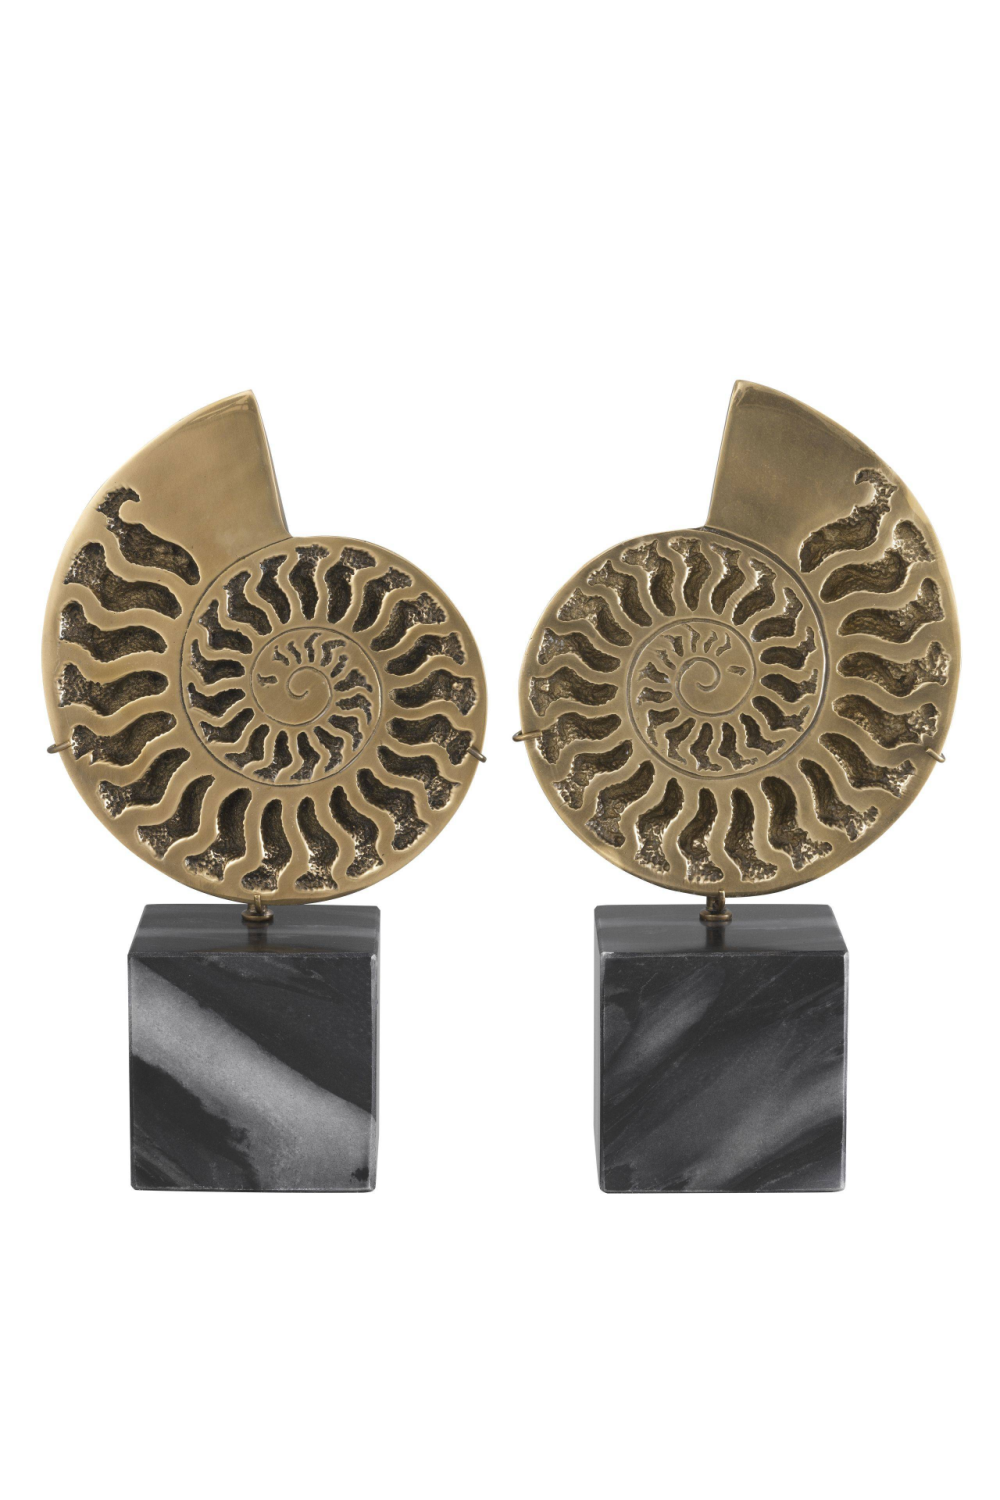 Vintage Brass Object Set of 2  | Eichholtz Ammonite | OROA